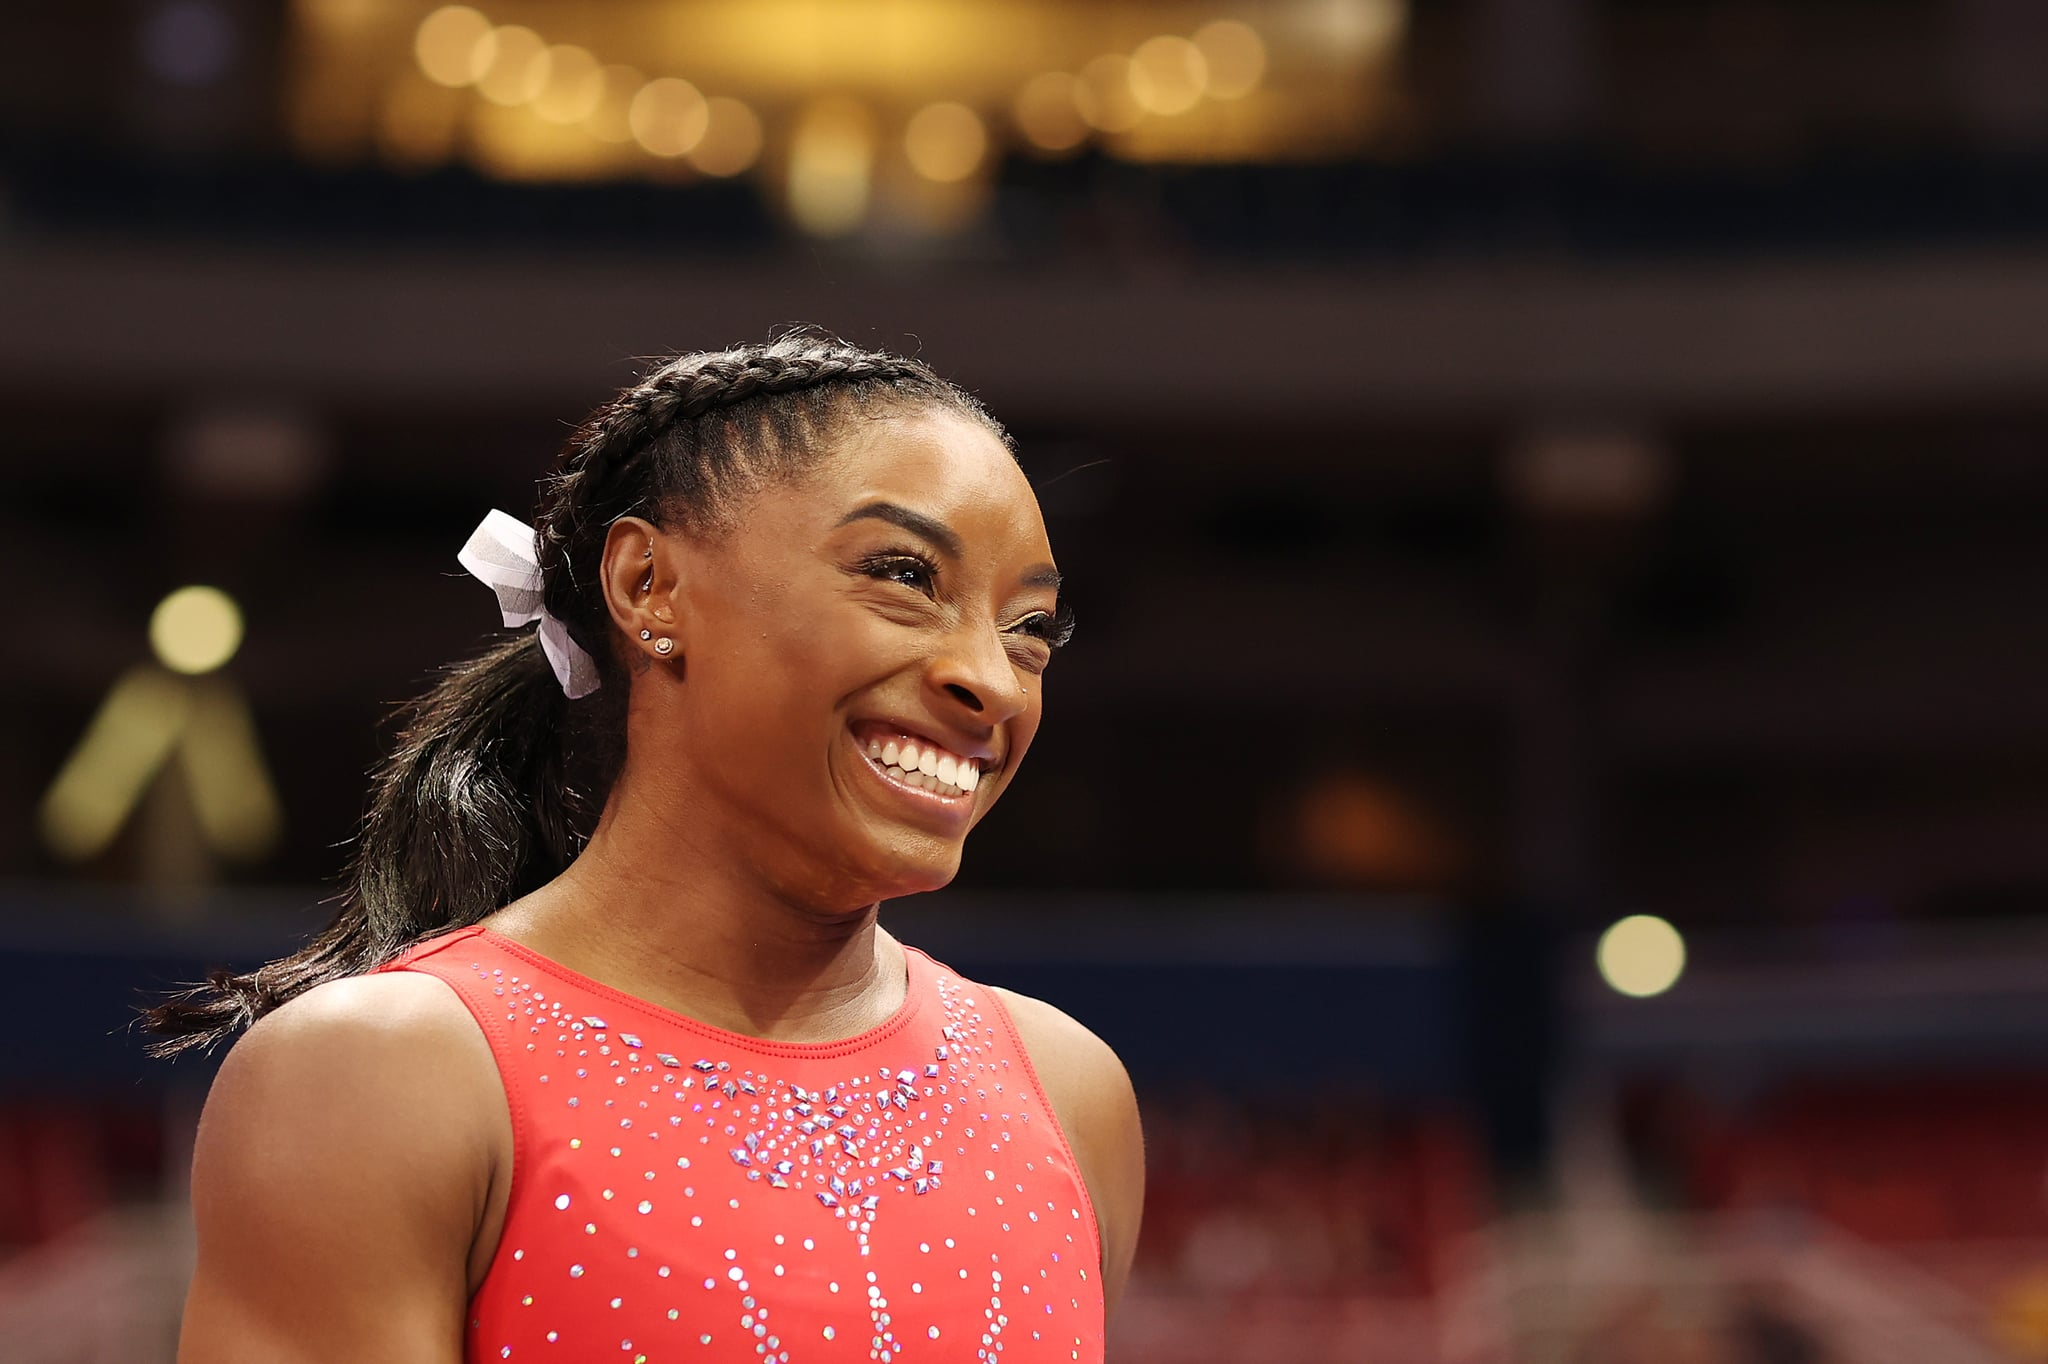 ST LOUIS, MISSOURI - JUNE 27: Simone Biles reacts during warm ups prior to the Women's competition of the 2021 U.S. Gymnastics Olympic Trials at America's Centre on June 27, 2021 in St Louis, Missouri. (Photo by Carmen Mandato/Getty Images)